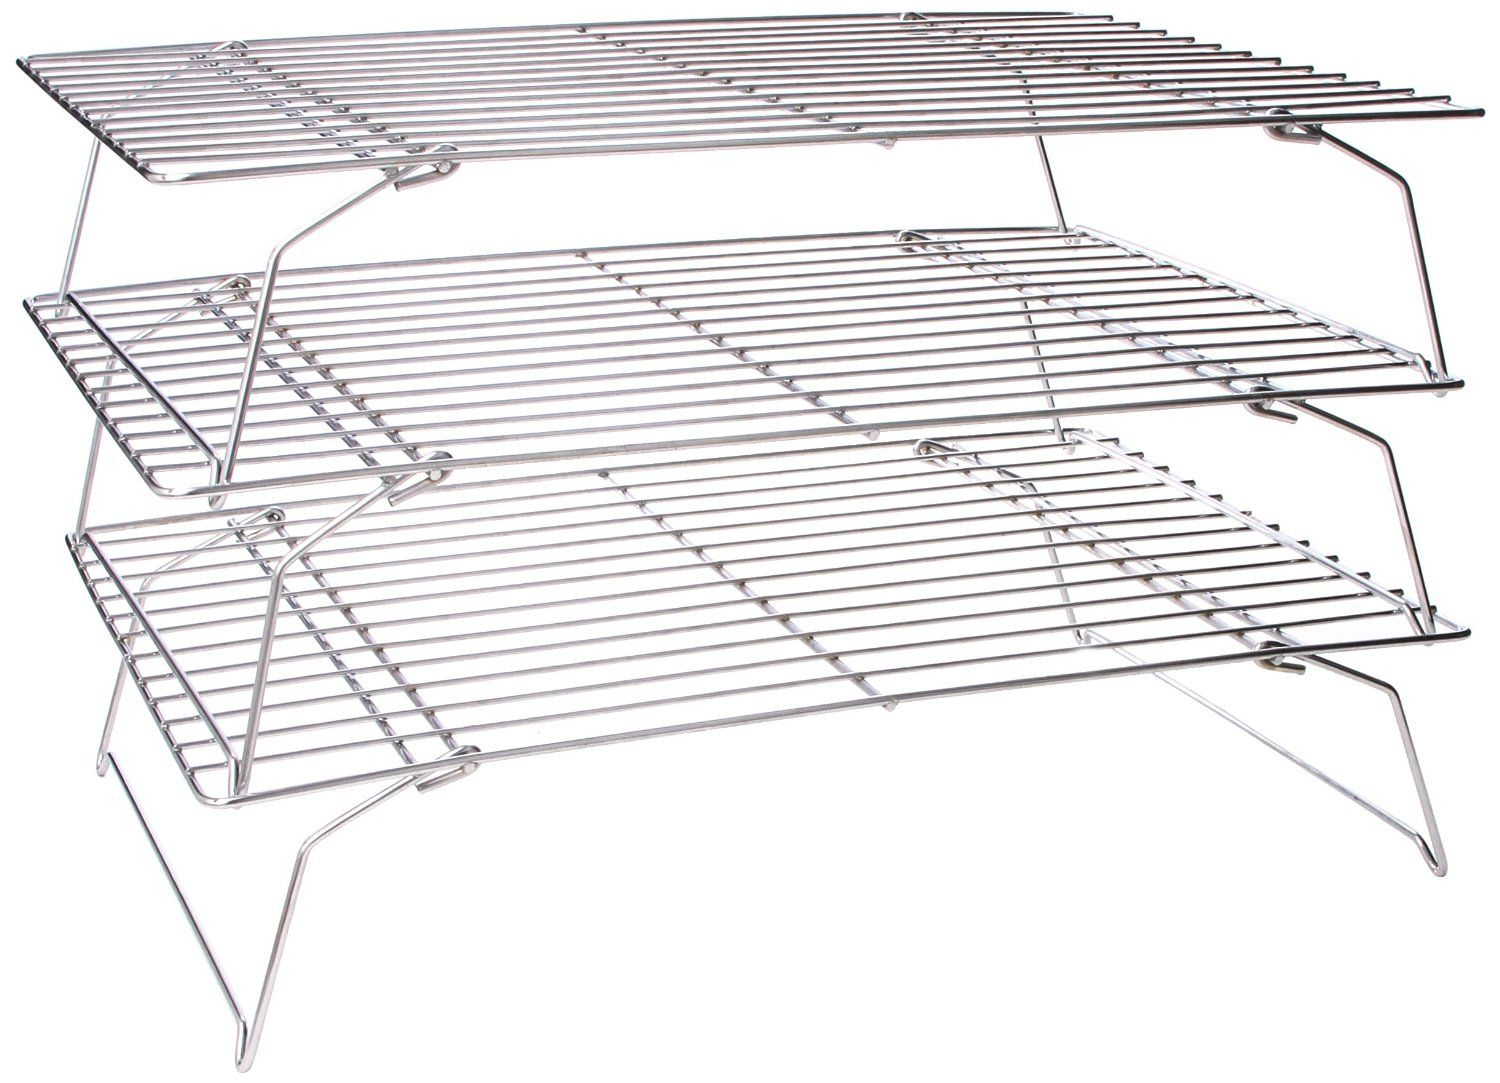 Fox Run Stackable 10 Inch By 14 Inch Cooling Rack Set Quickly View This Special Deal Click The Image Bakin Cooling Racks Baking Accessories Cool Kitchens